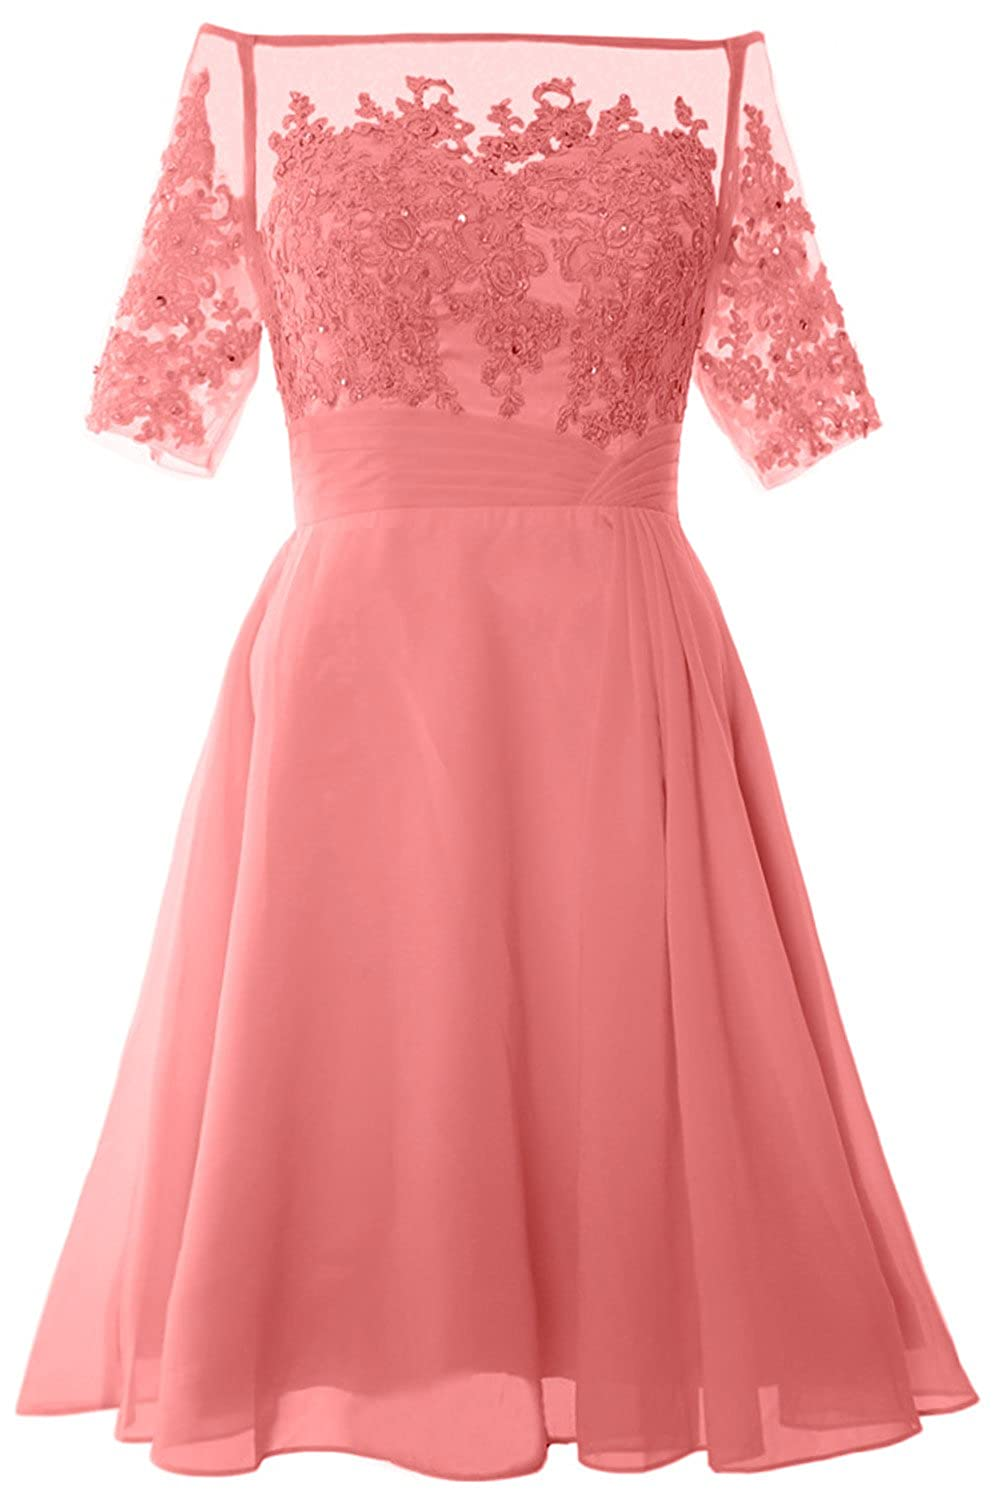 MACloth Women Off Shoulder Lace Short Sleeve Cocktail Dress Wedding Evening Gown